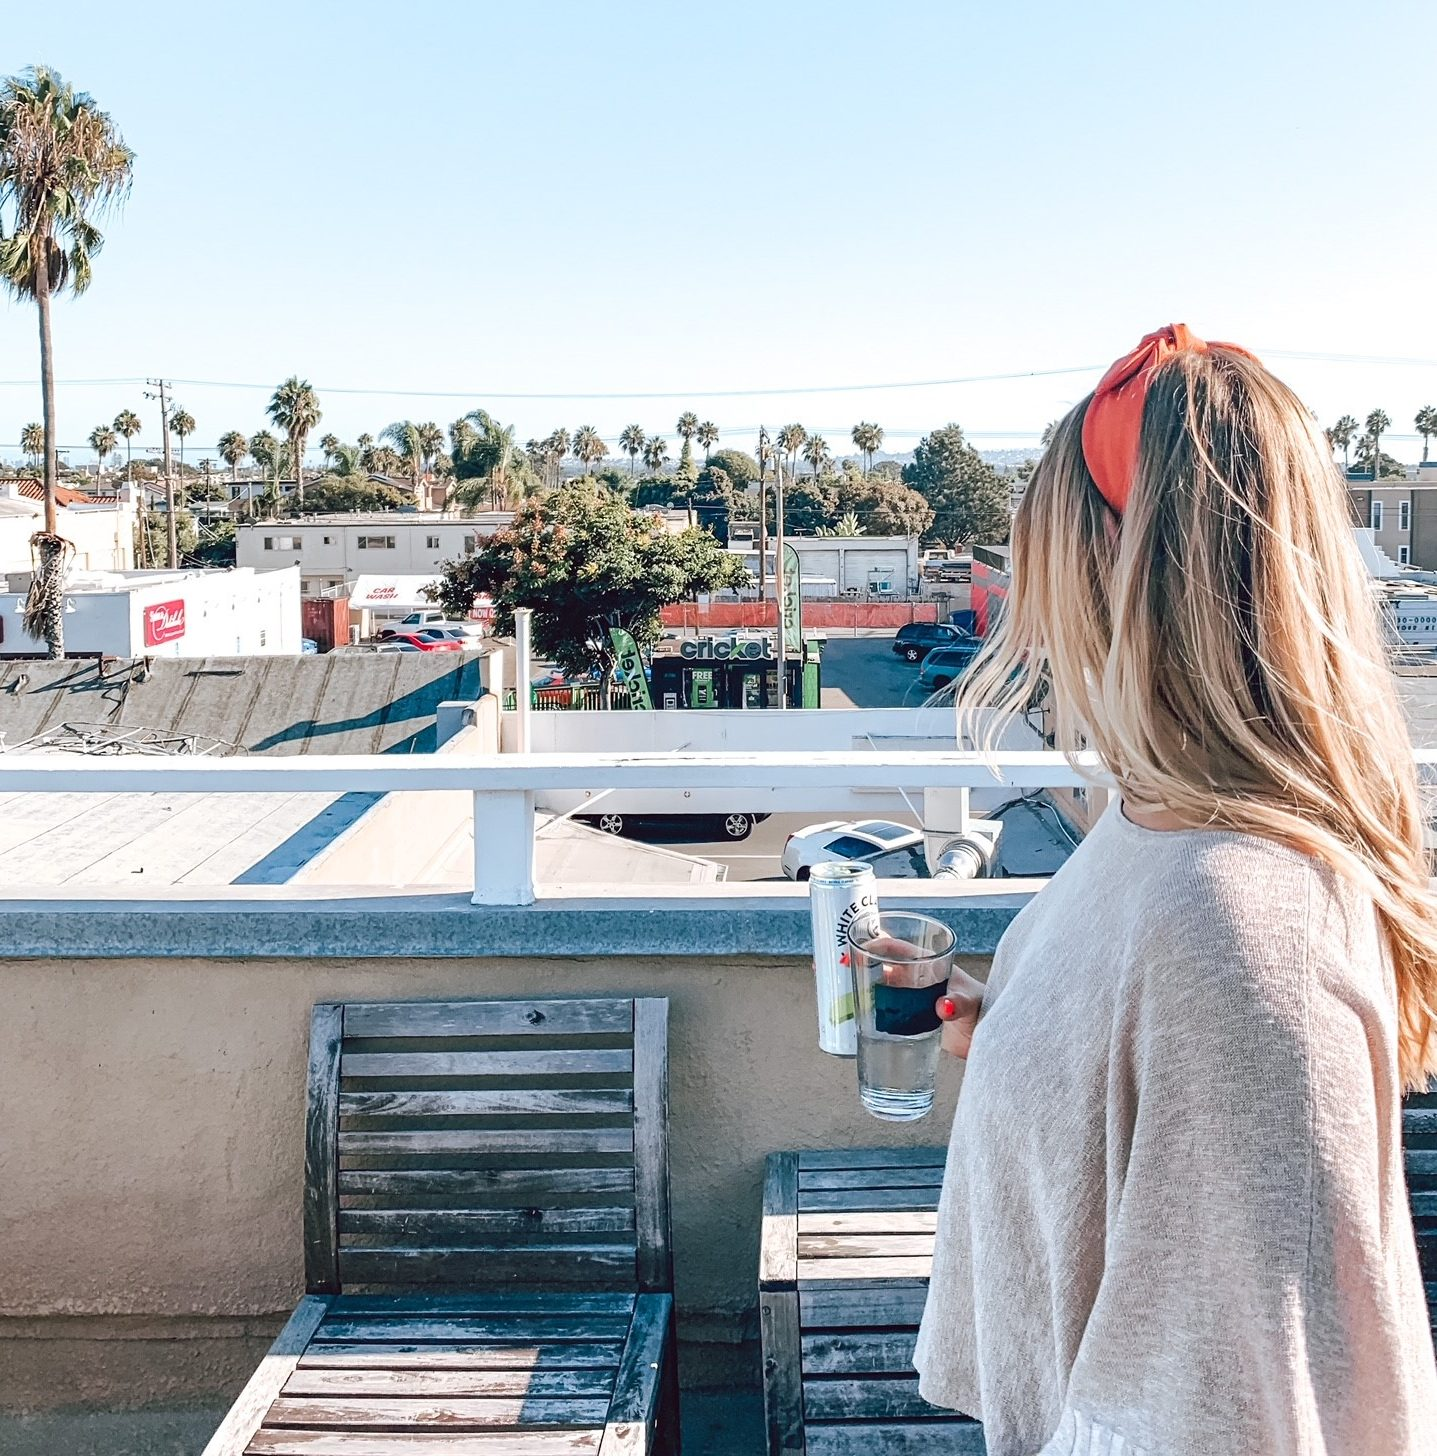 Pacific Beach is a solid neighborhood for a girls' getaway in San Diego.